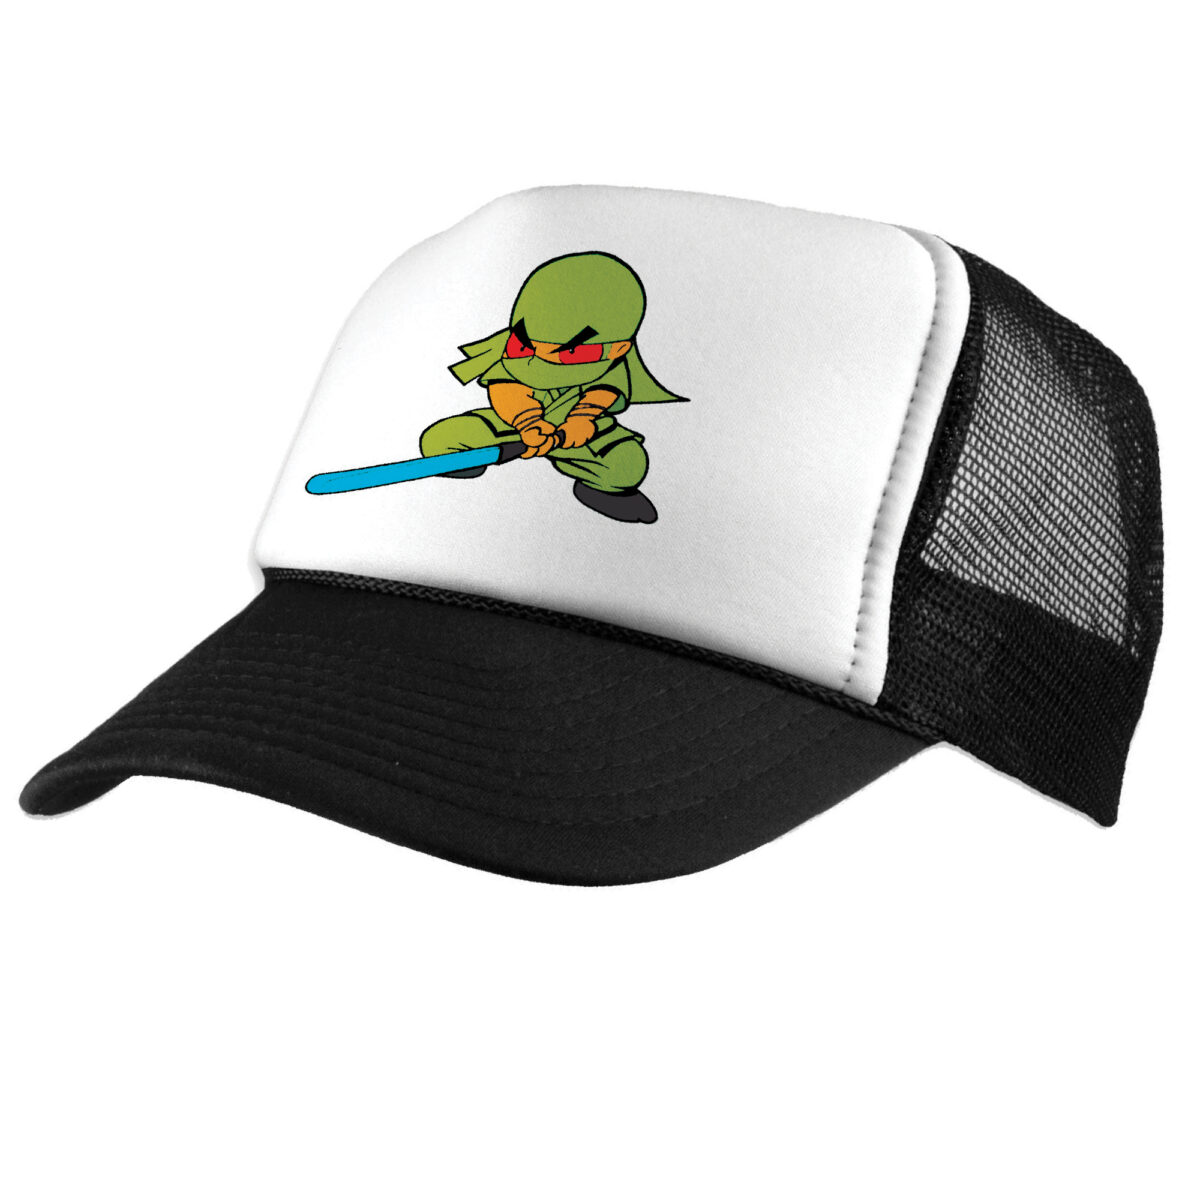 White and Black Hat with Ninja design printed with Forever Classic and Universal Paper on white background